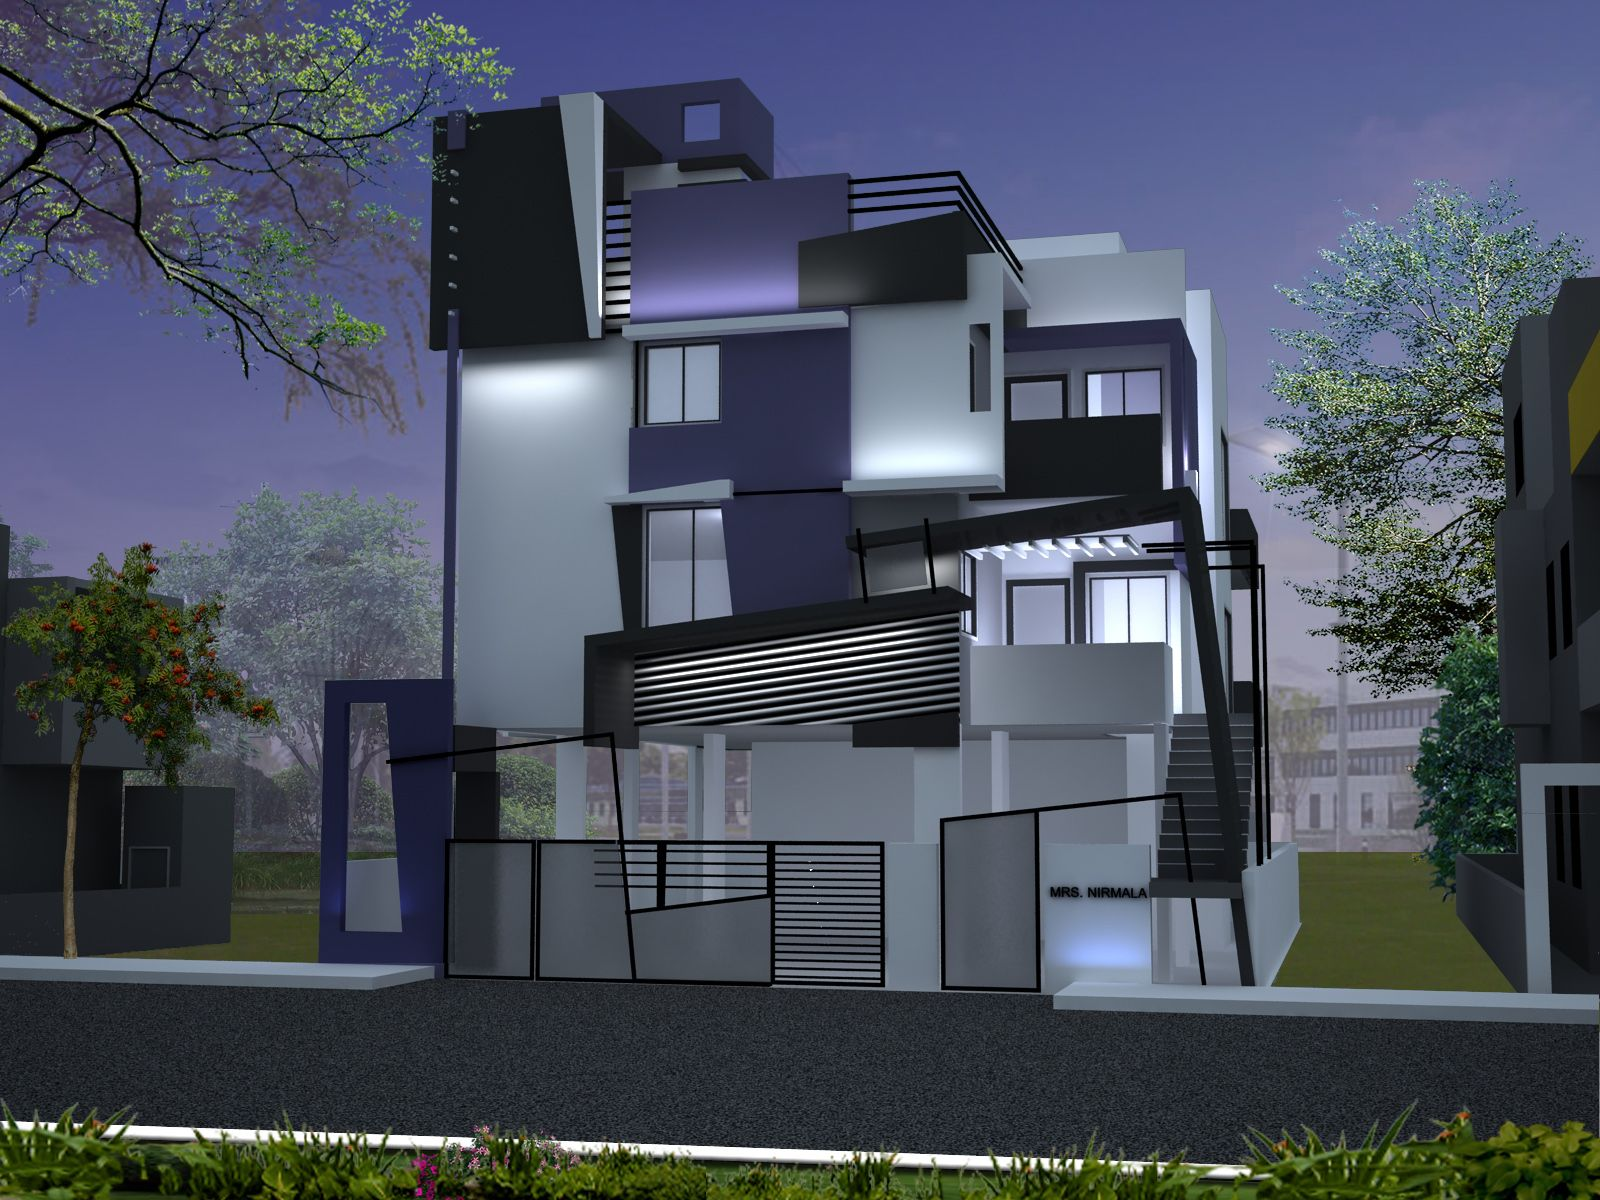 Front Elevation Designs For Houses In Bangalore : Chandrashekar s house front elevation design by ashwin